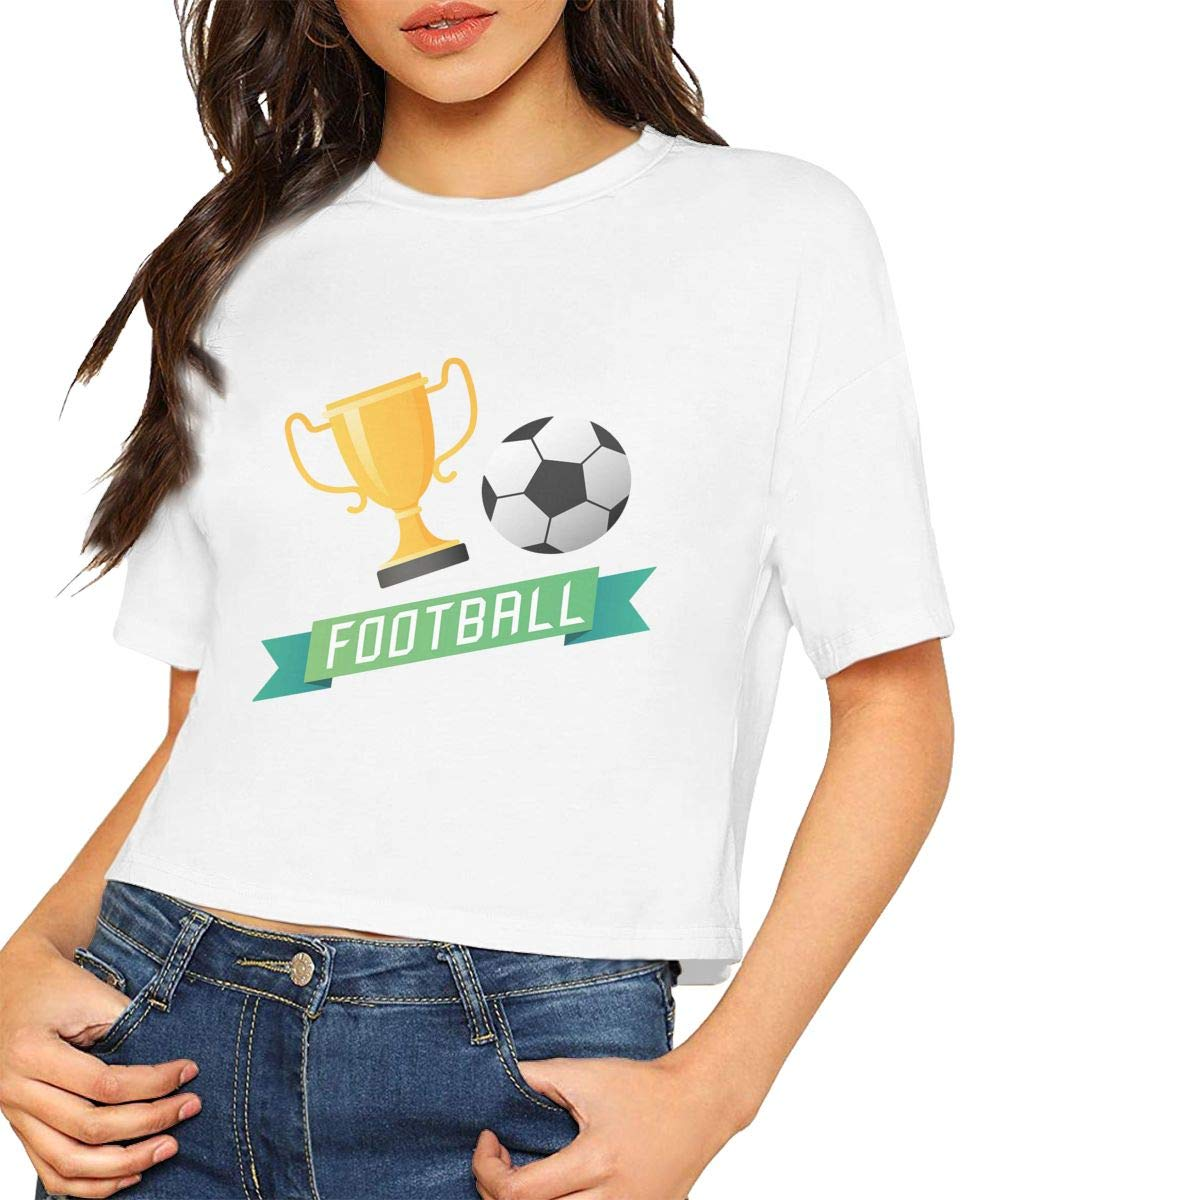 Qmad Womens Football Game Crop Top Tee T-Shirts Attractive Short Style Design Daily Skateboarding Short-Sleeve Comfortable Tees Tops White